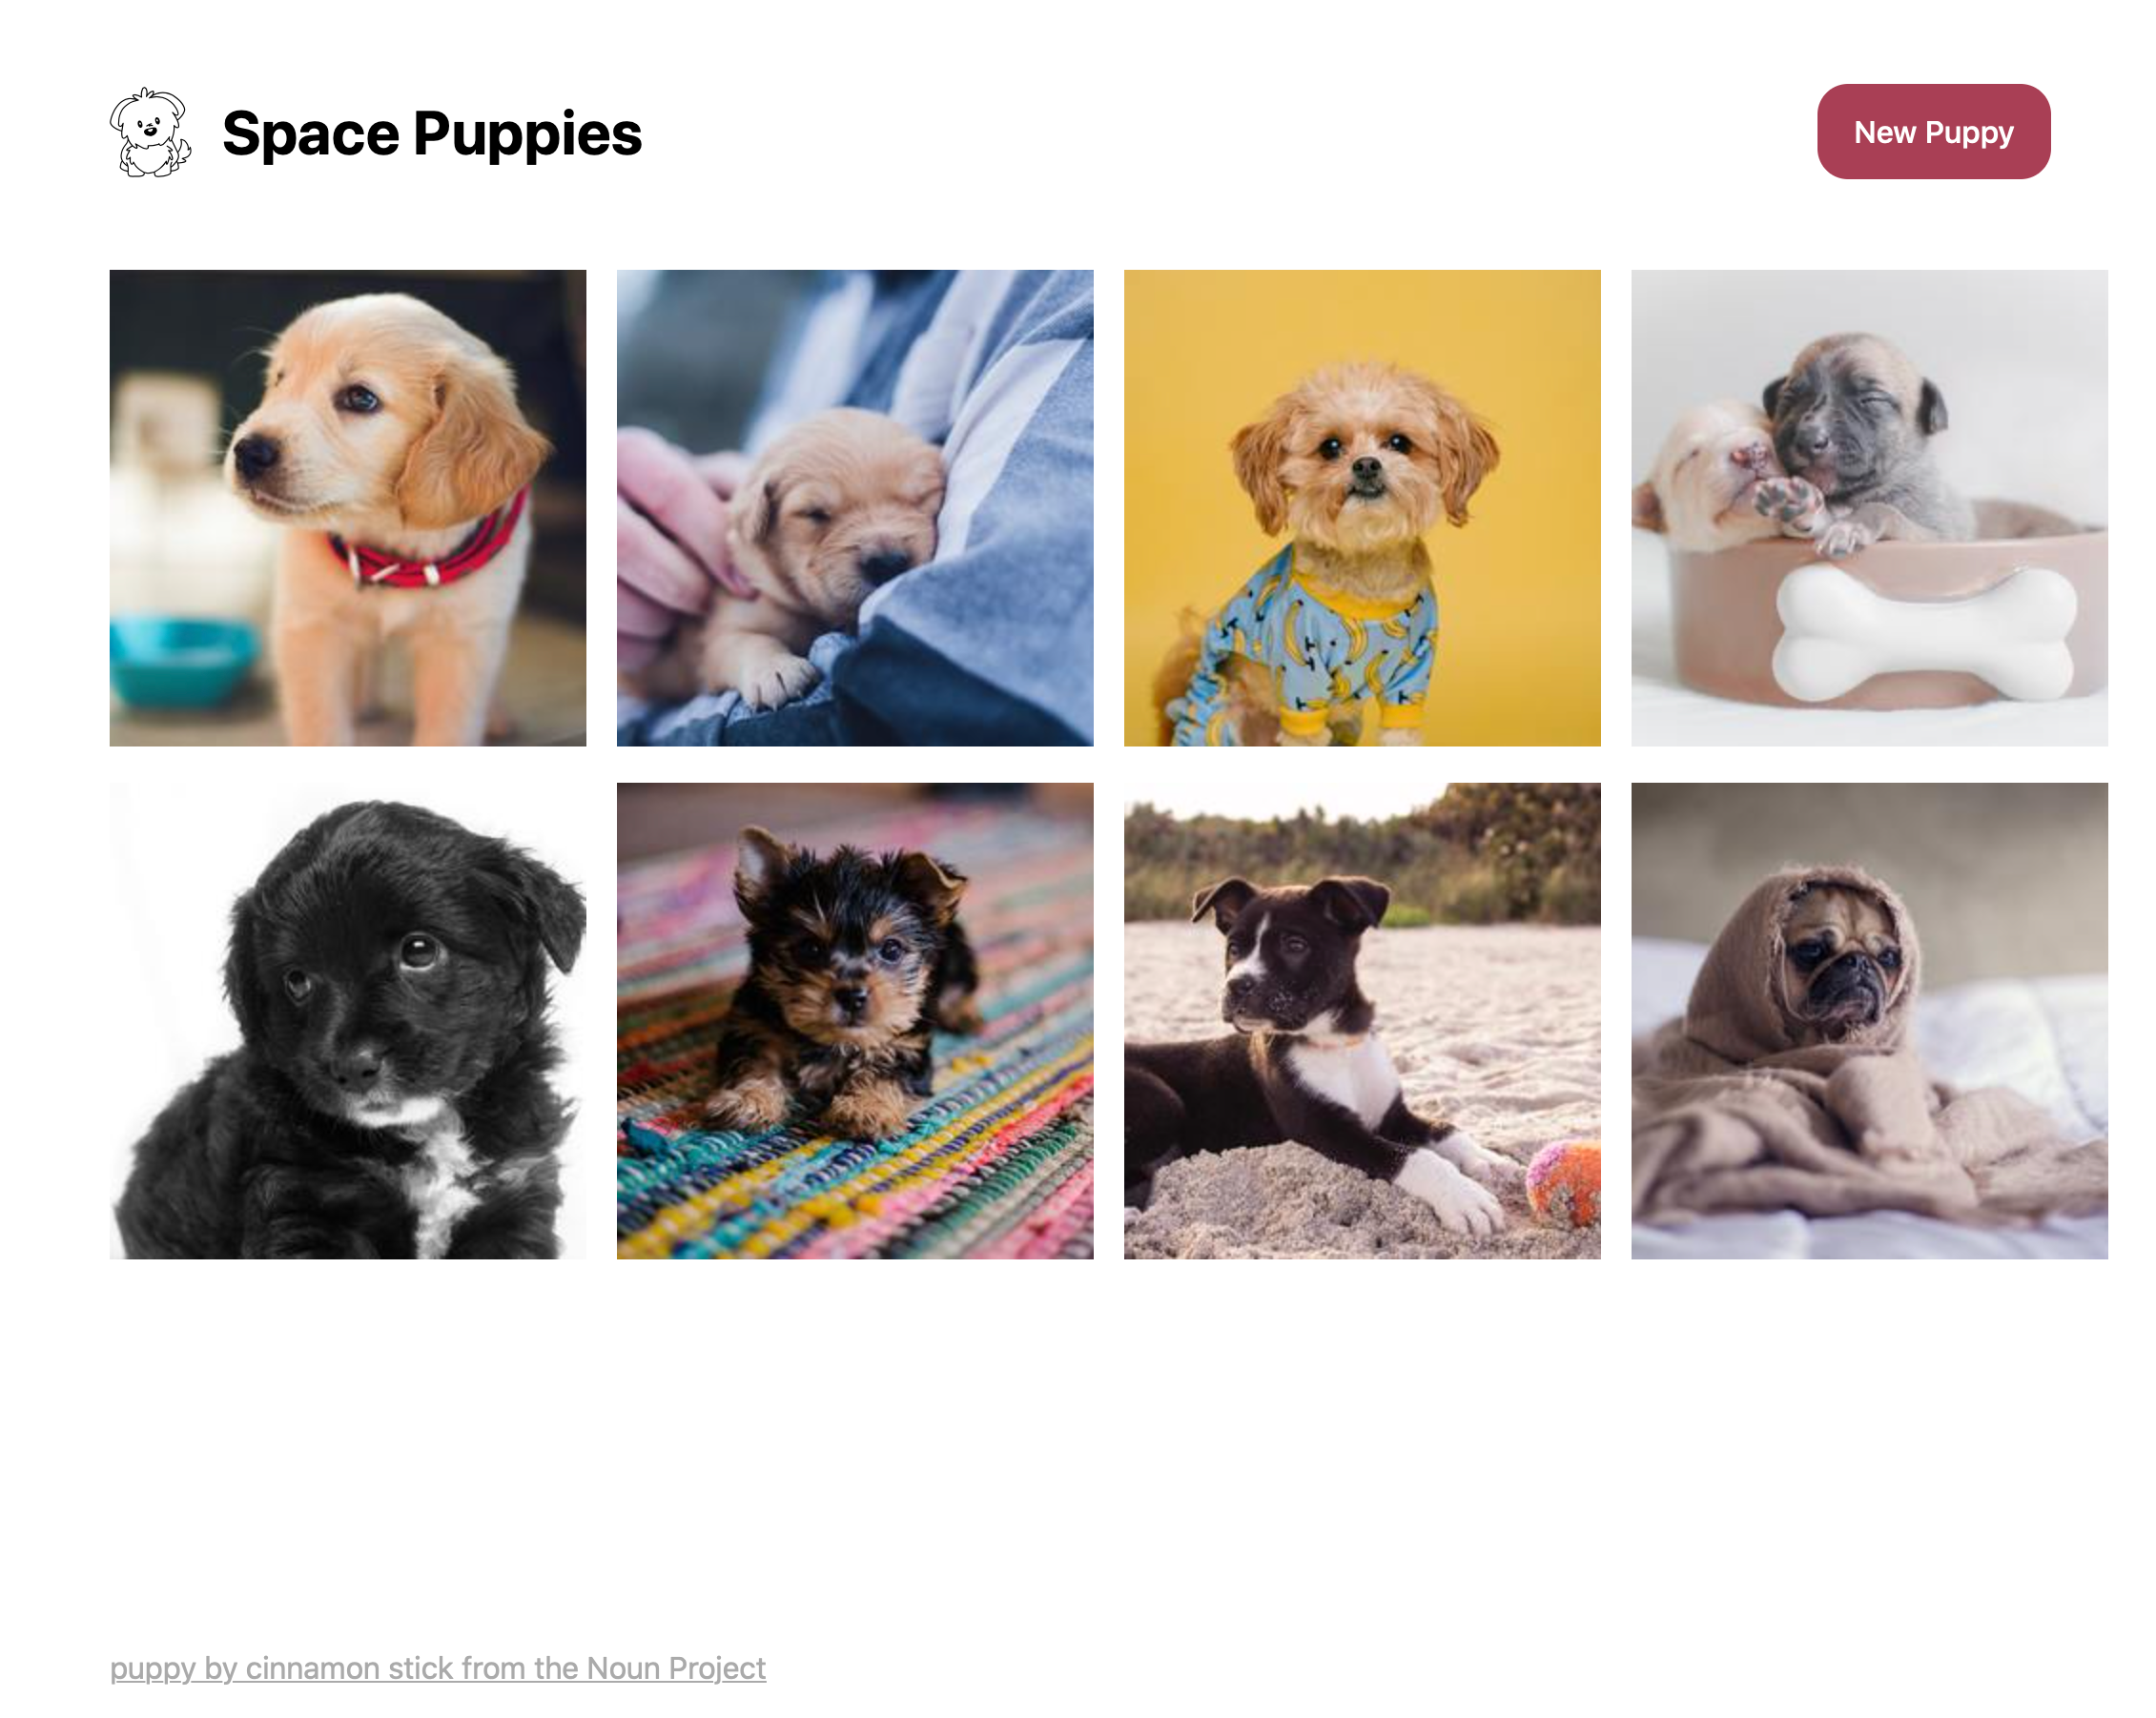 The Space Puppies application running in a web browser